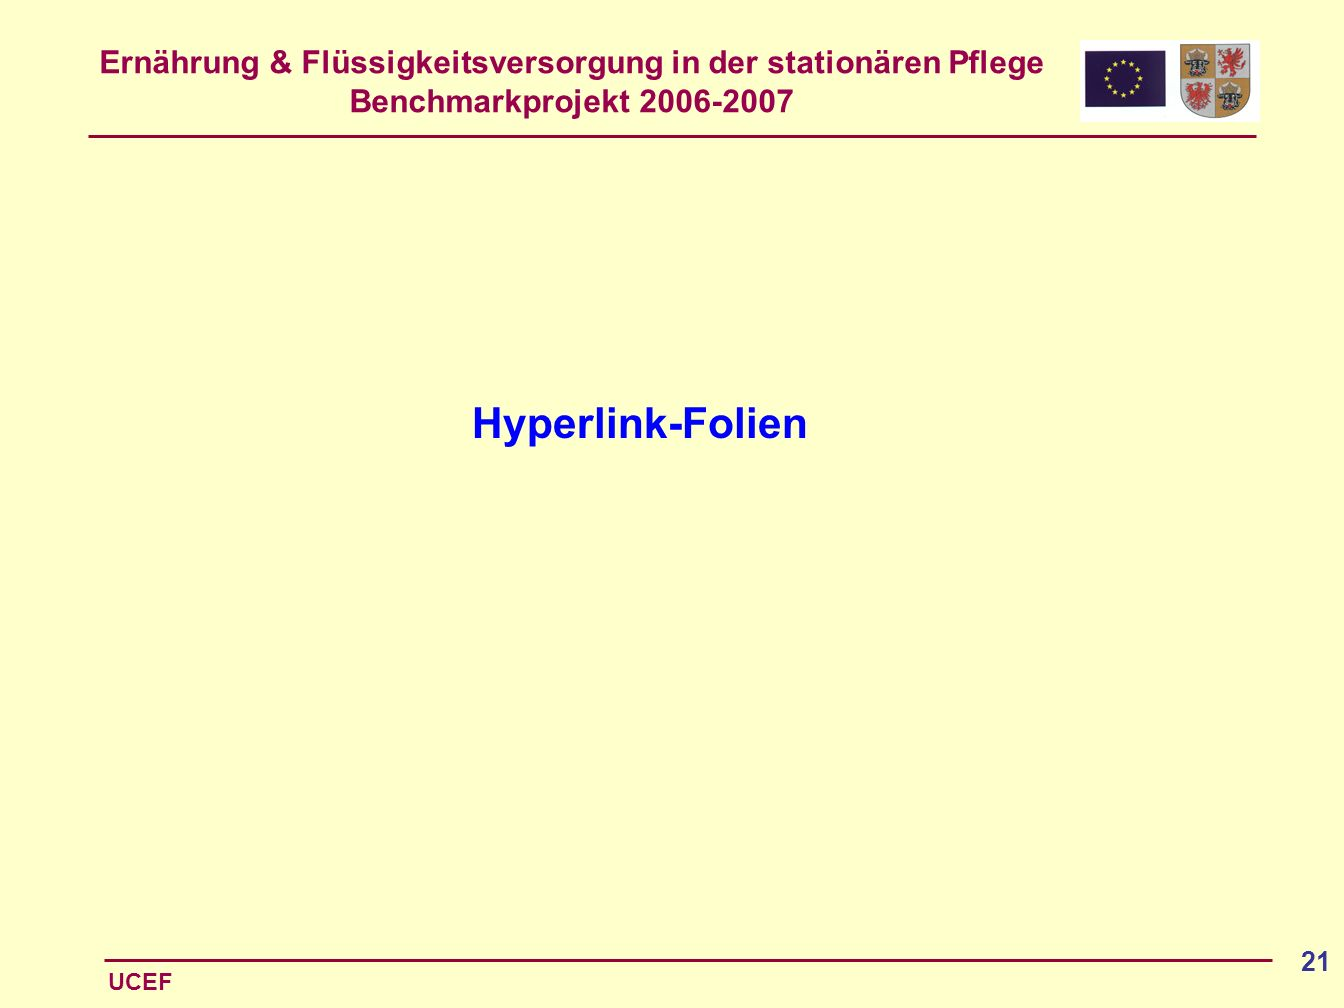 Hyperlink-Folien